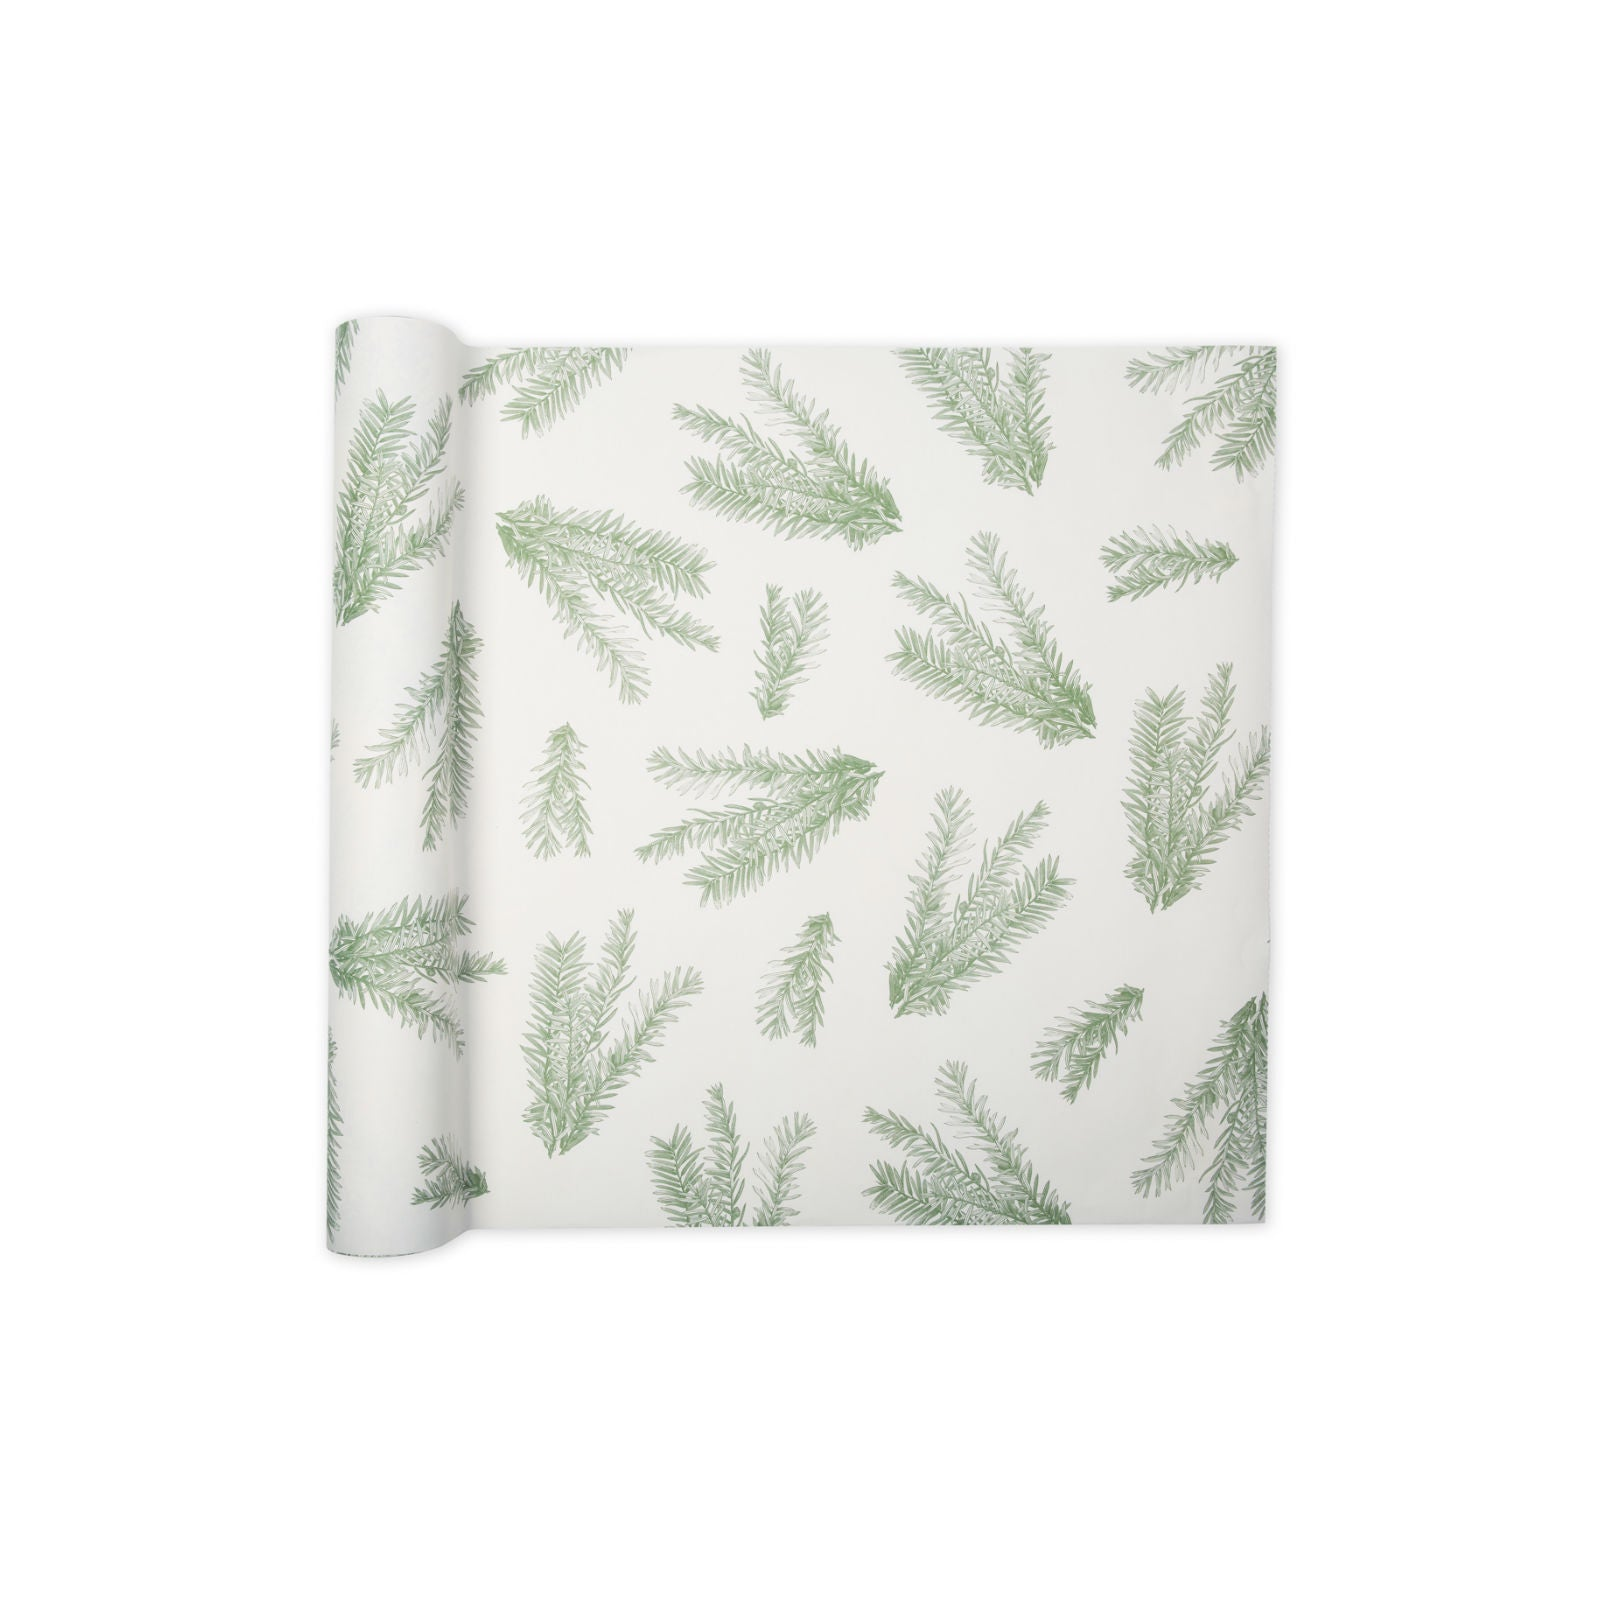 Winter Green Paper Runner